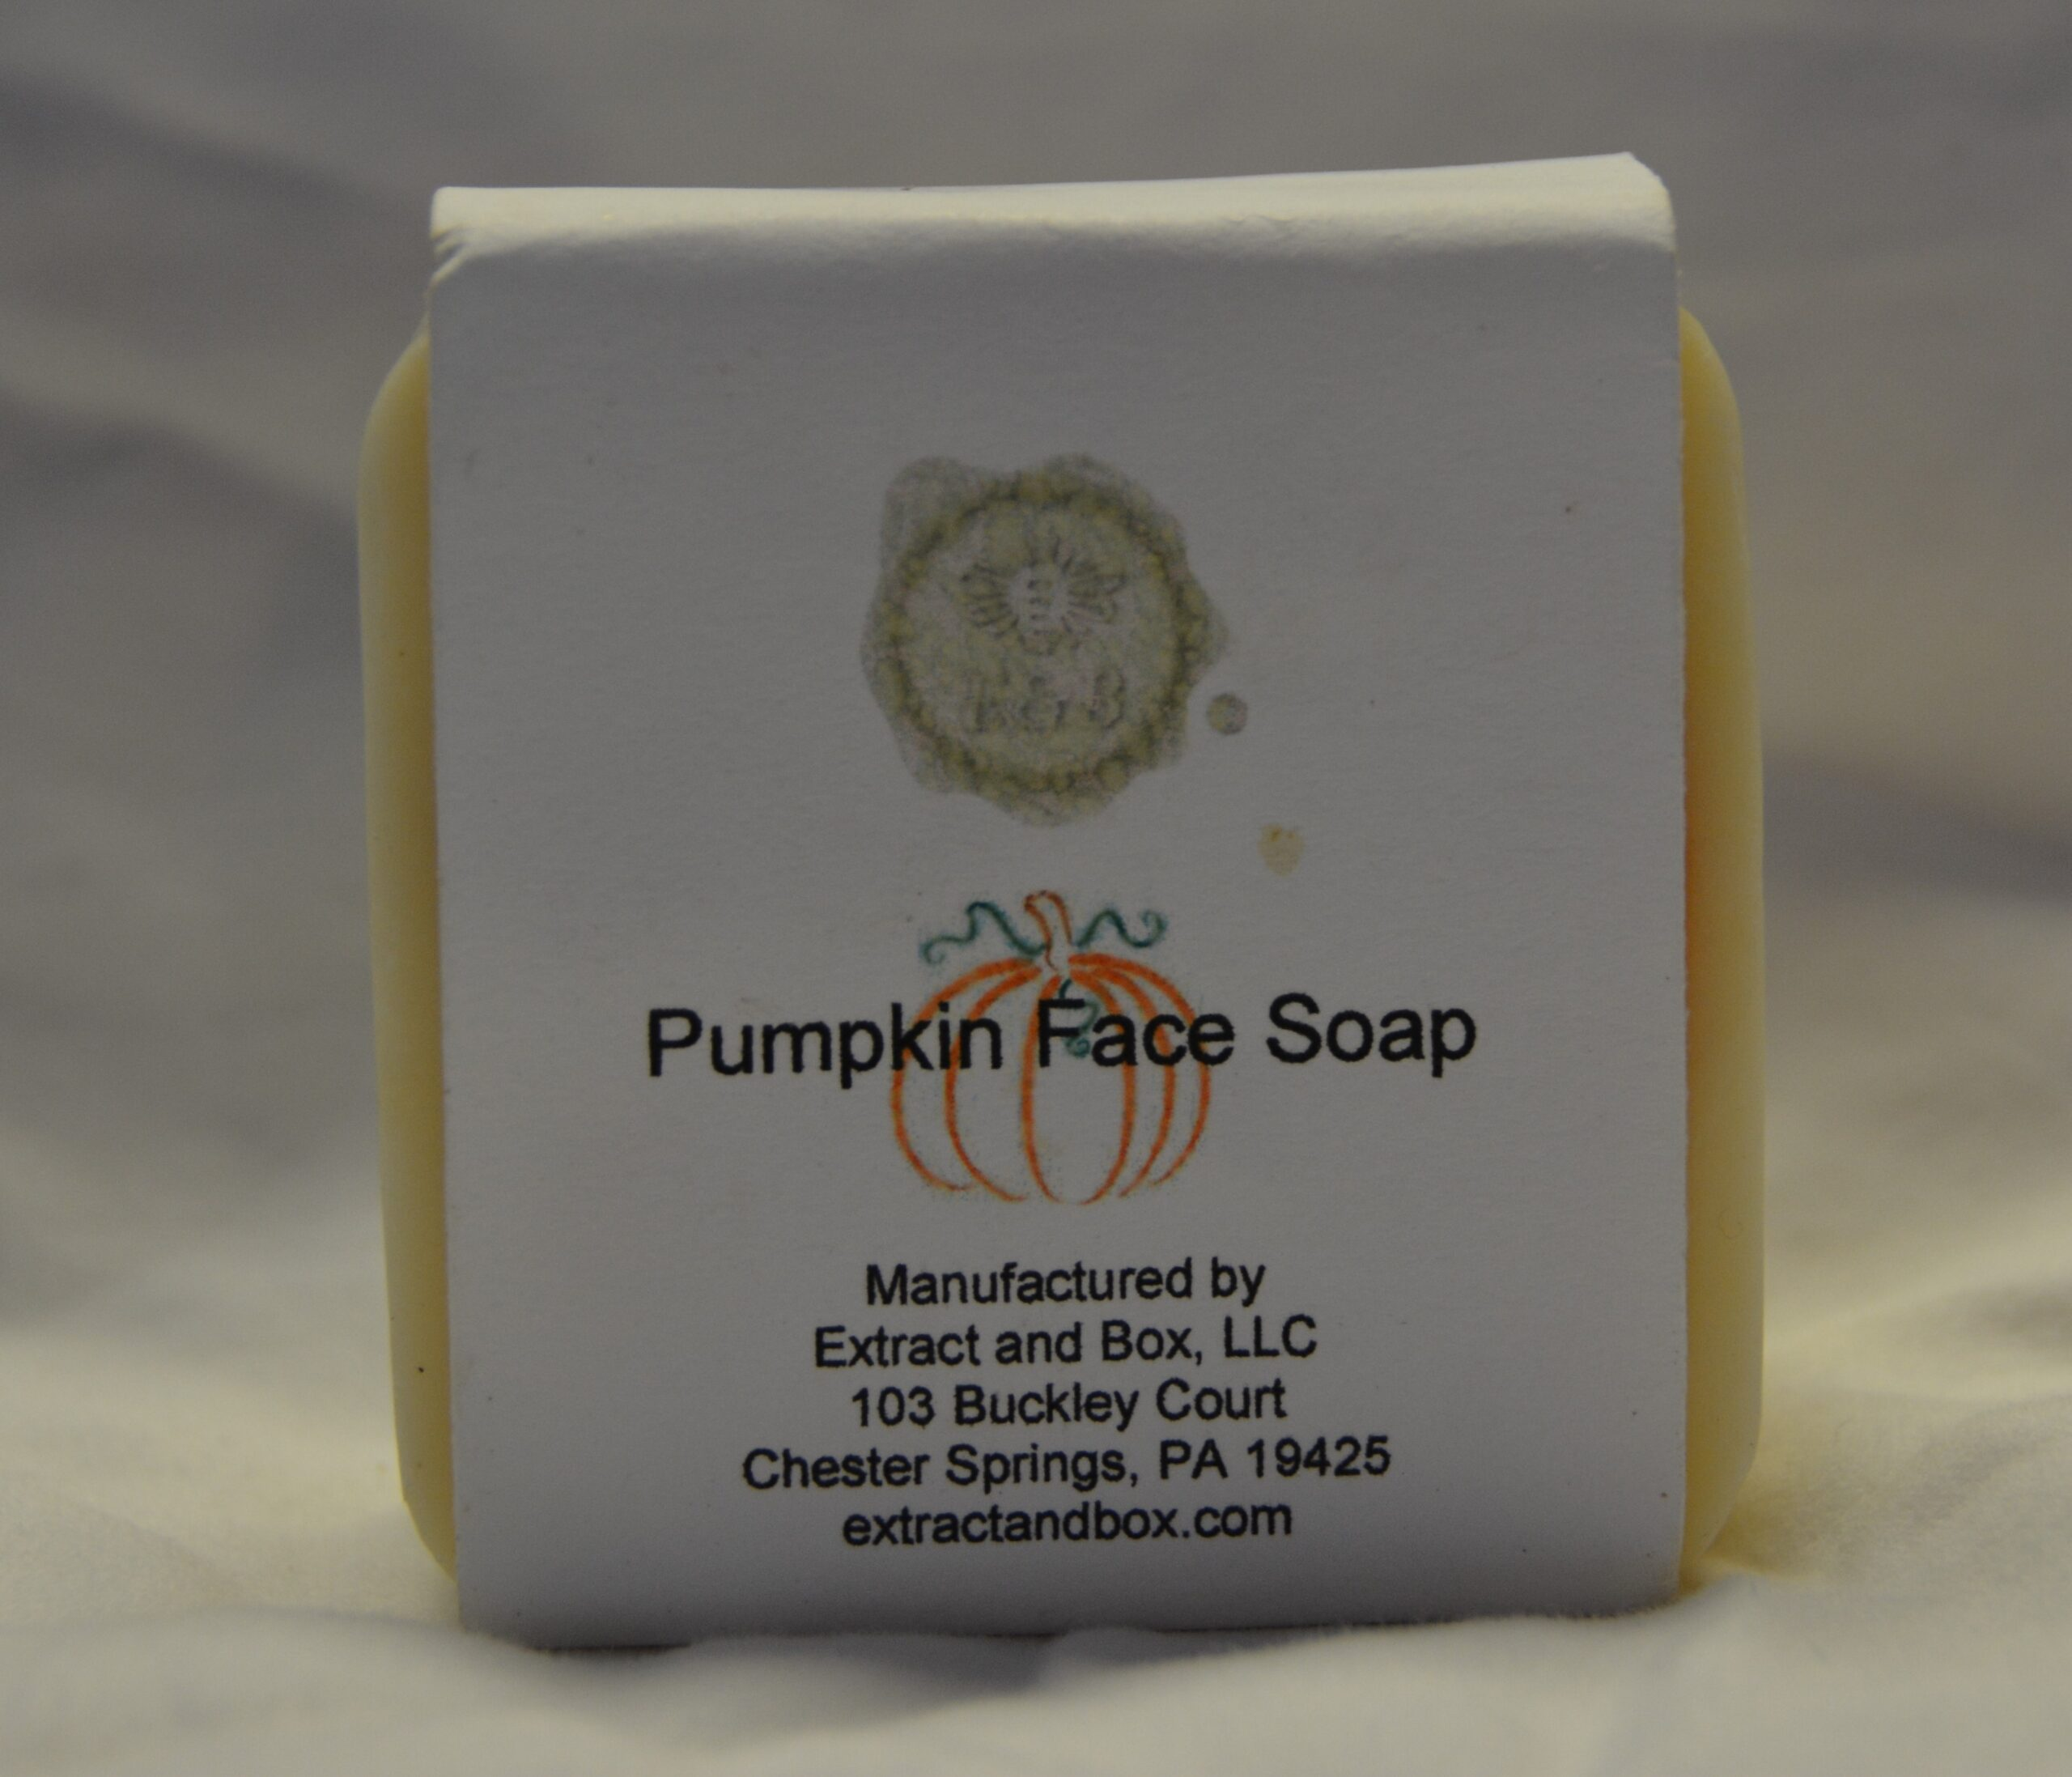 Pumpkin Face Soap